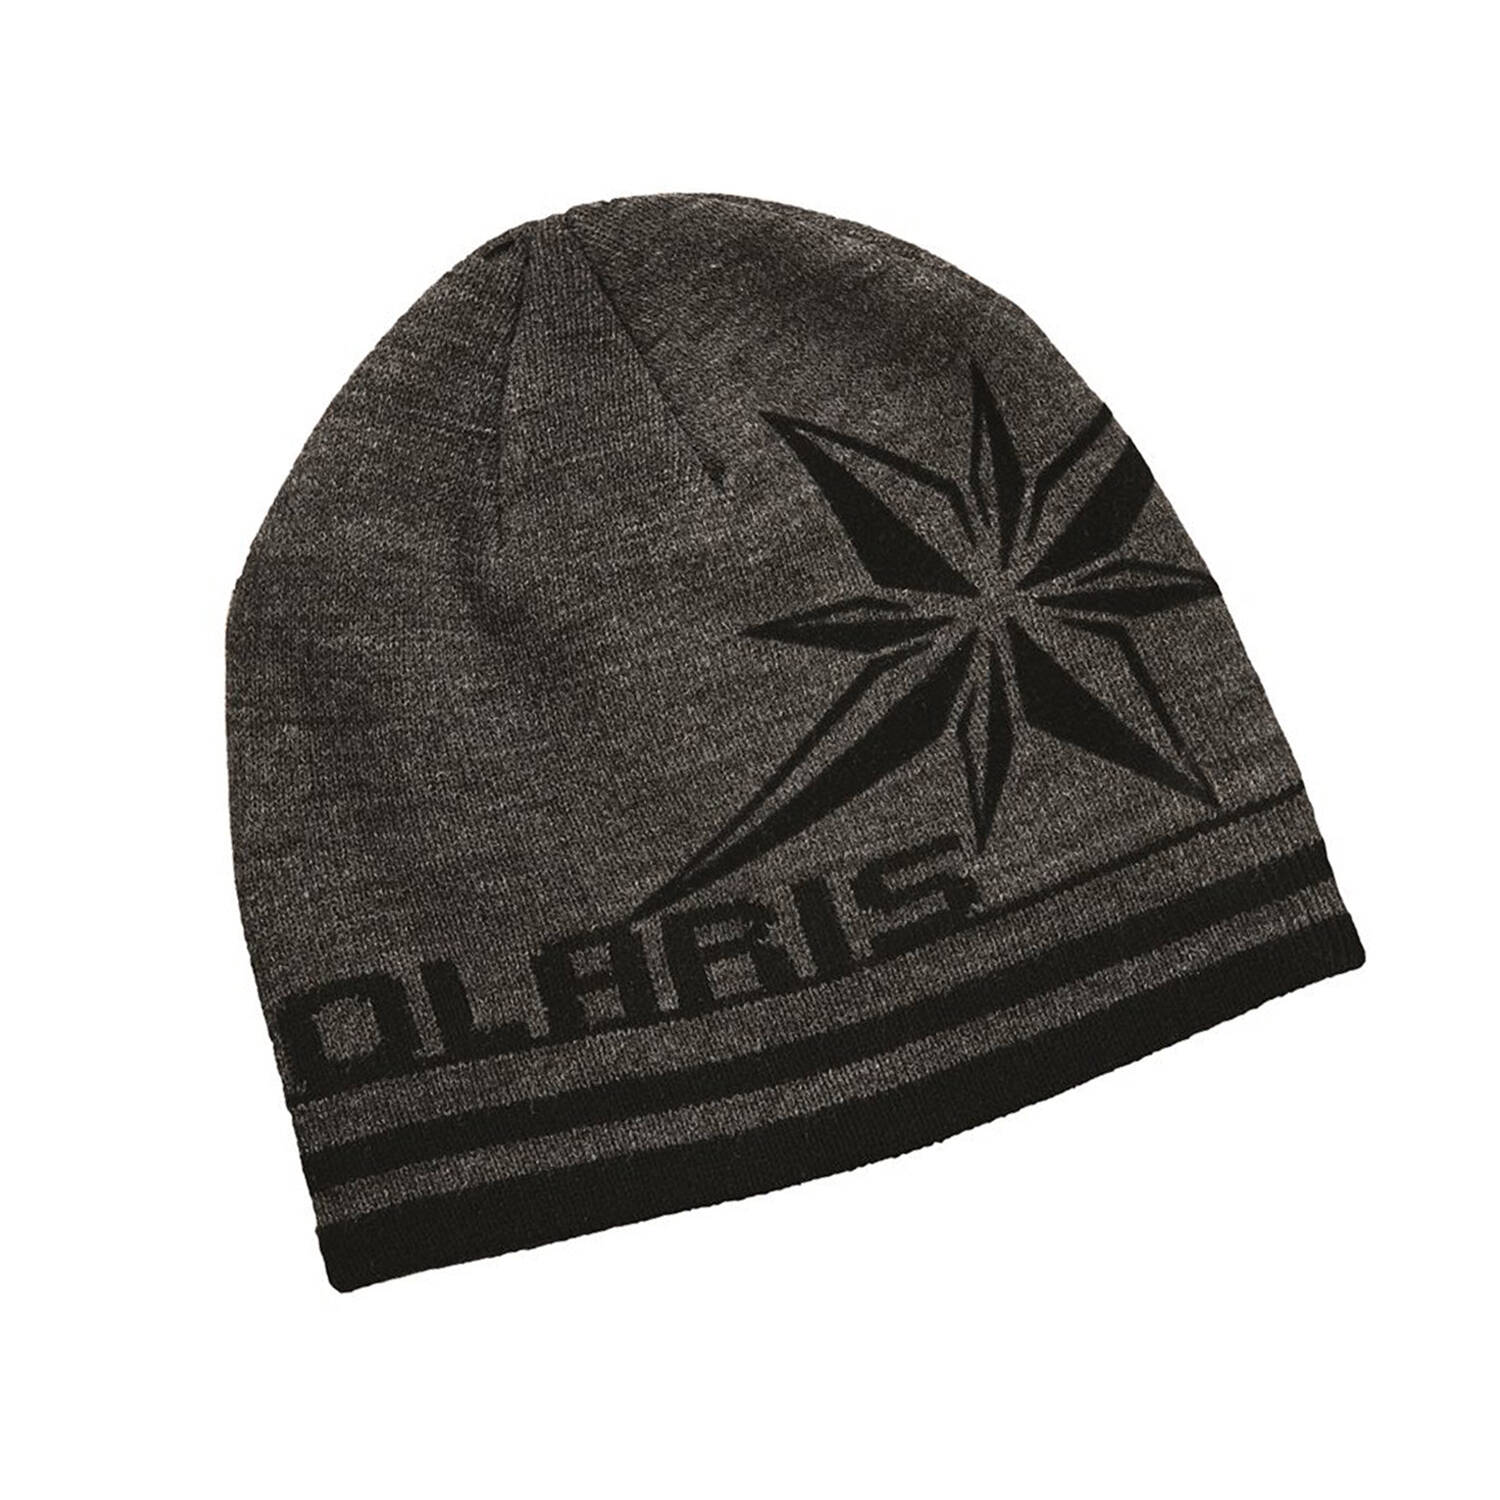 Unisex Knit Northern Star Beanie, Gray